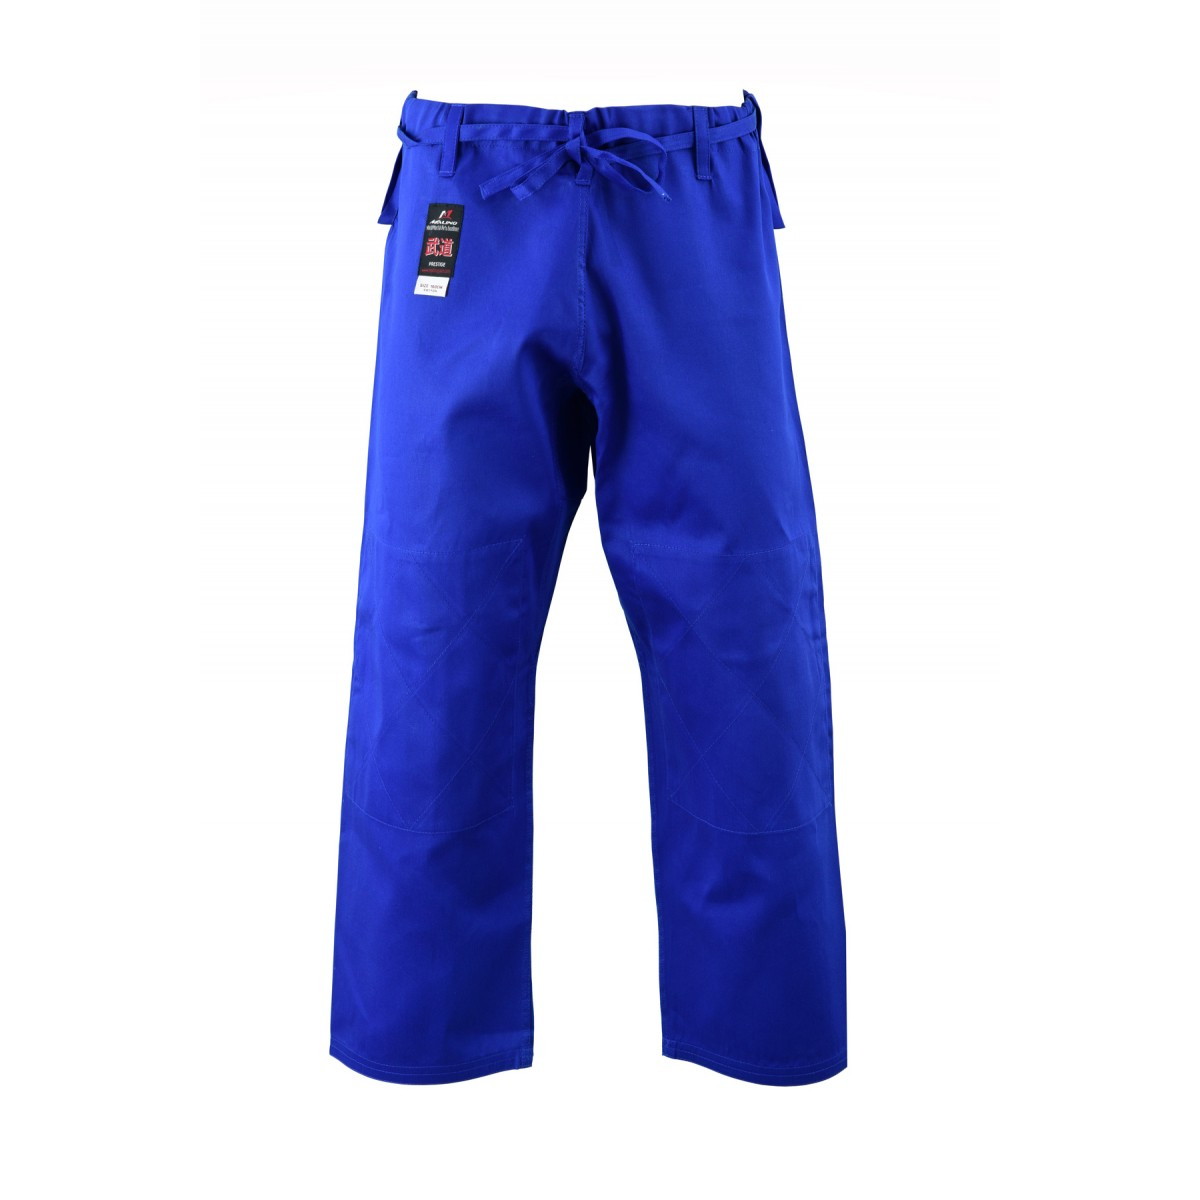 Kids Student Judo Trousers Lightweight Cotton Blue - 7oz